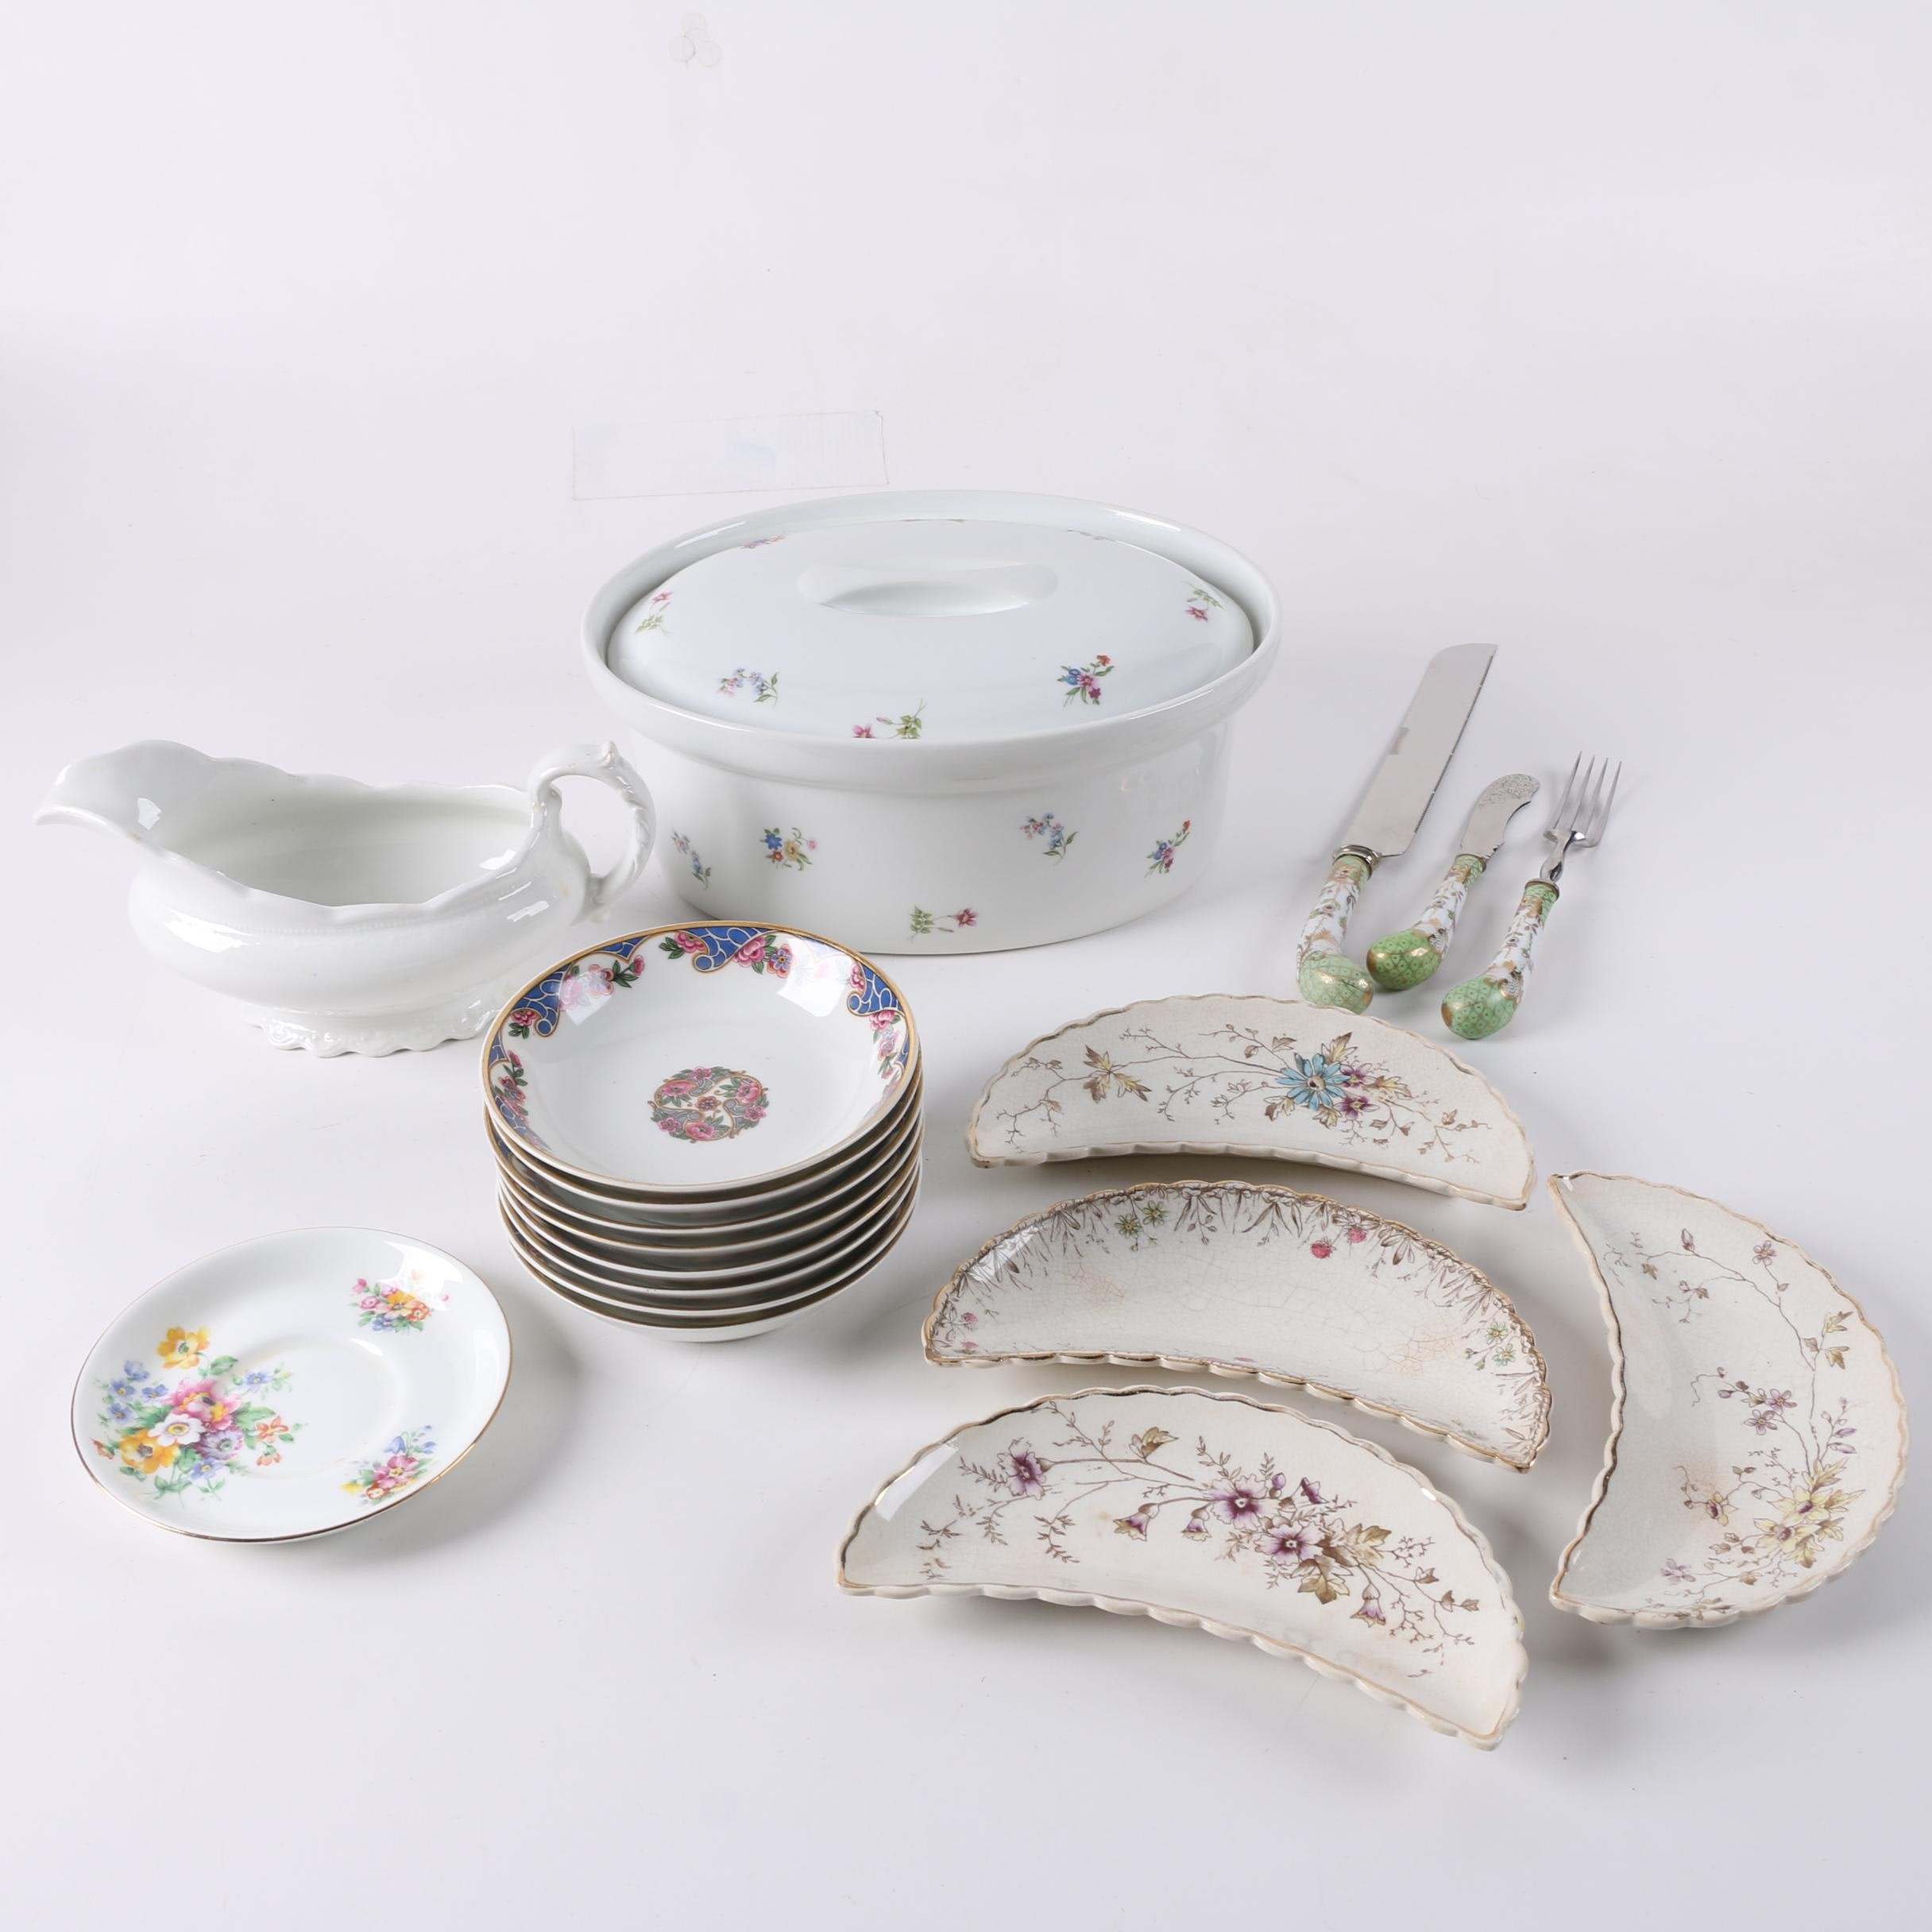 Serveware Including Vintage W. H. Grindley & Co. ca. 1914-25